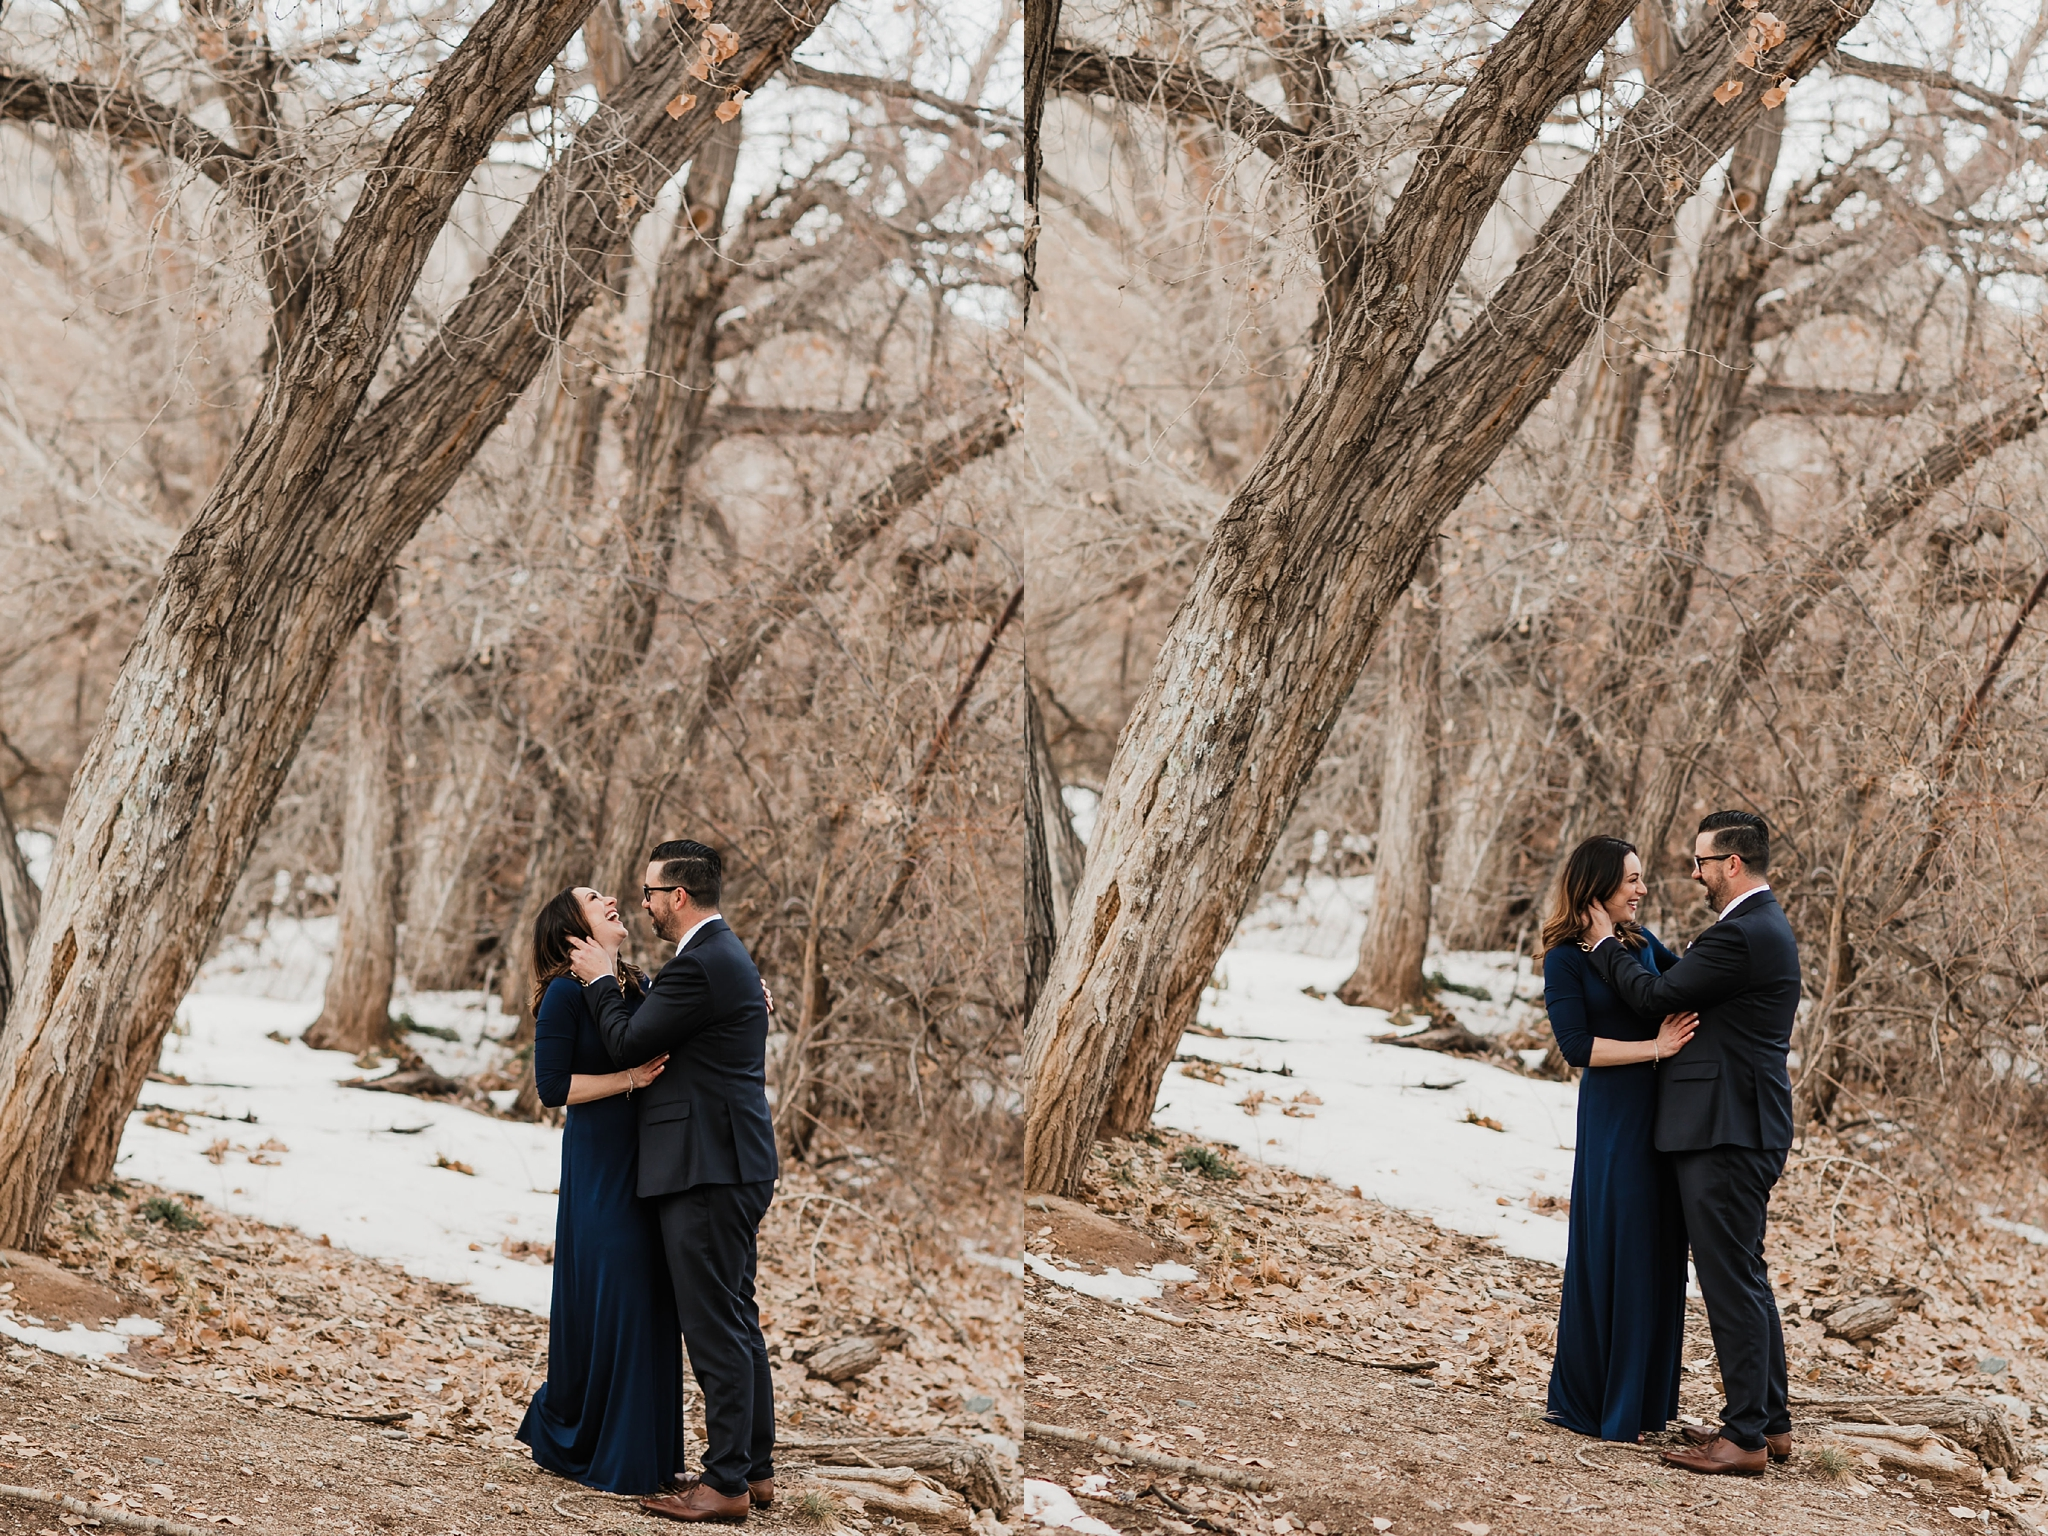 Alicia+lucia+photography+-+albuquerque+wedding+photographer+-+santa+fe+wedding+photography+-+new+mexico+wedding+photographer+-+new+mexico+wedding+-+engagement+-+winter+engagement+-+albuquerque+engagement_0009.jpg